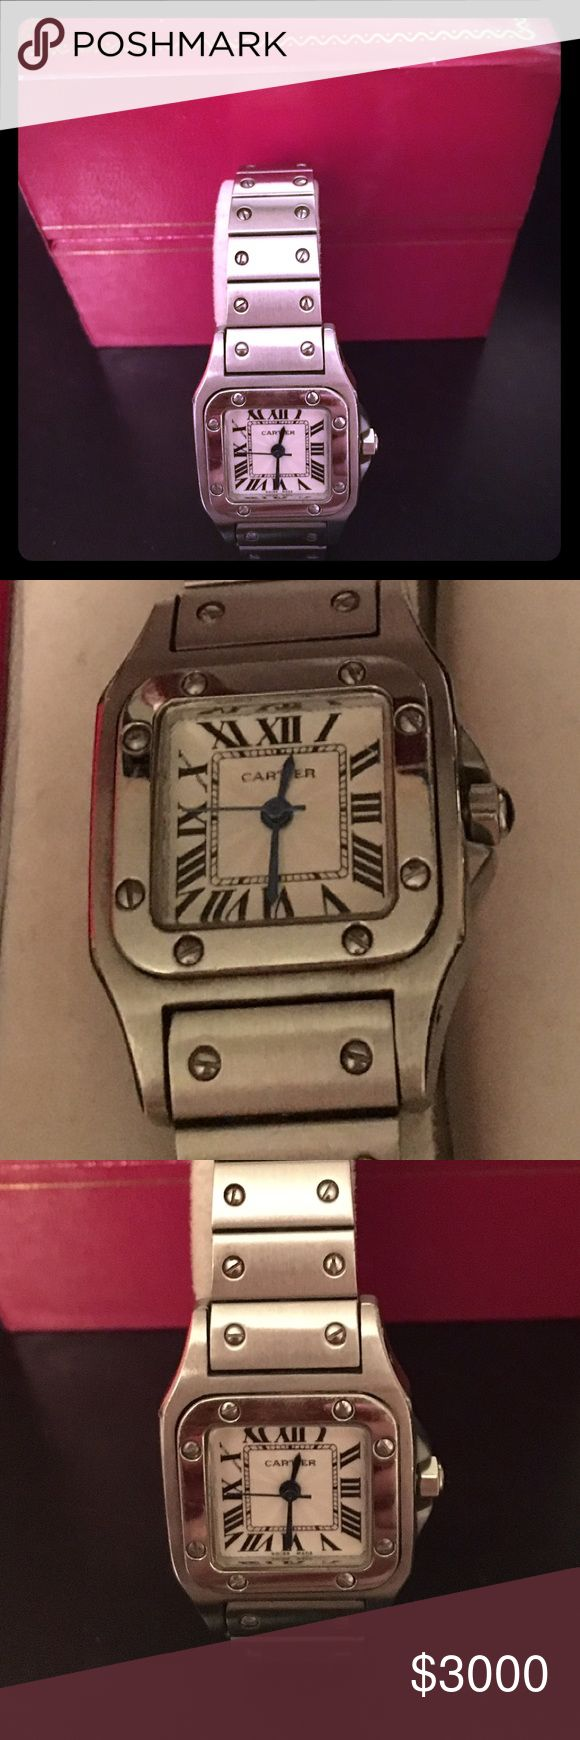 Cartier Watch Cartier watch Cartier Jewelry Bracelets